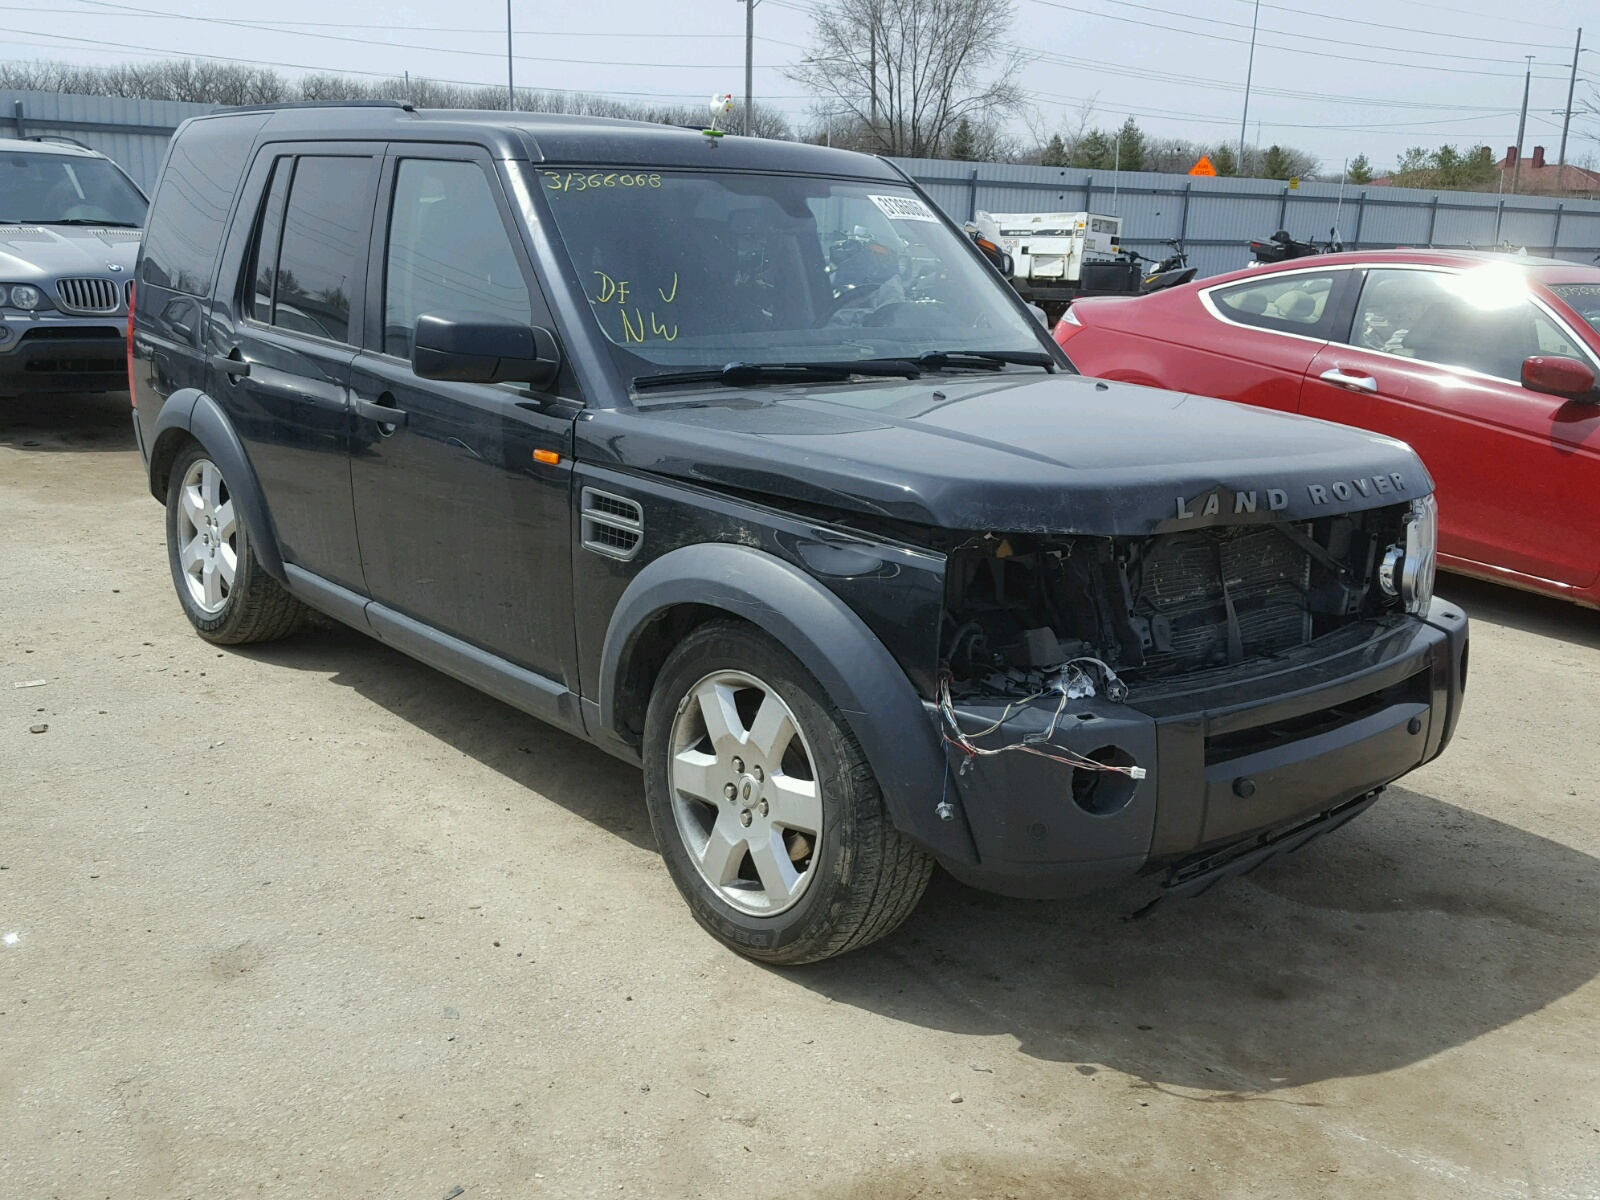 auctions carfinder salvage sale ca lot online san copart on landrover rear land in auto view rover certificate blue diego en hse for